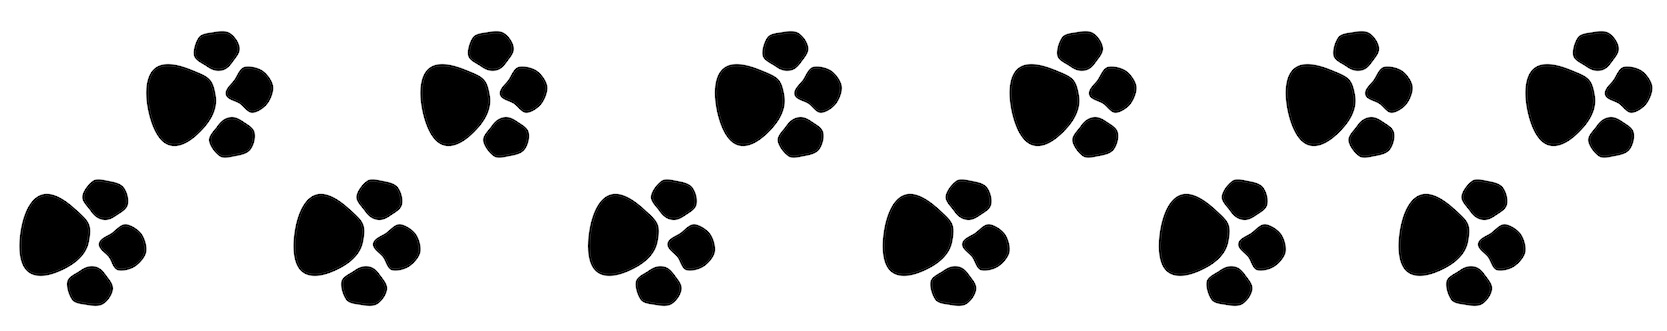 Dog Paw Pictures | Free download best Dog Paw Pictures on